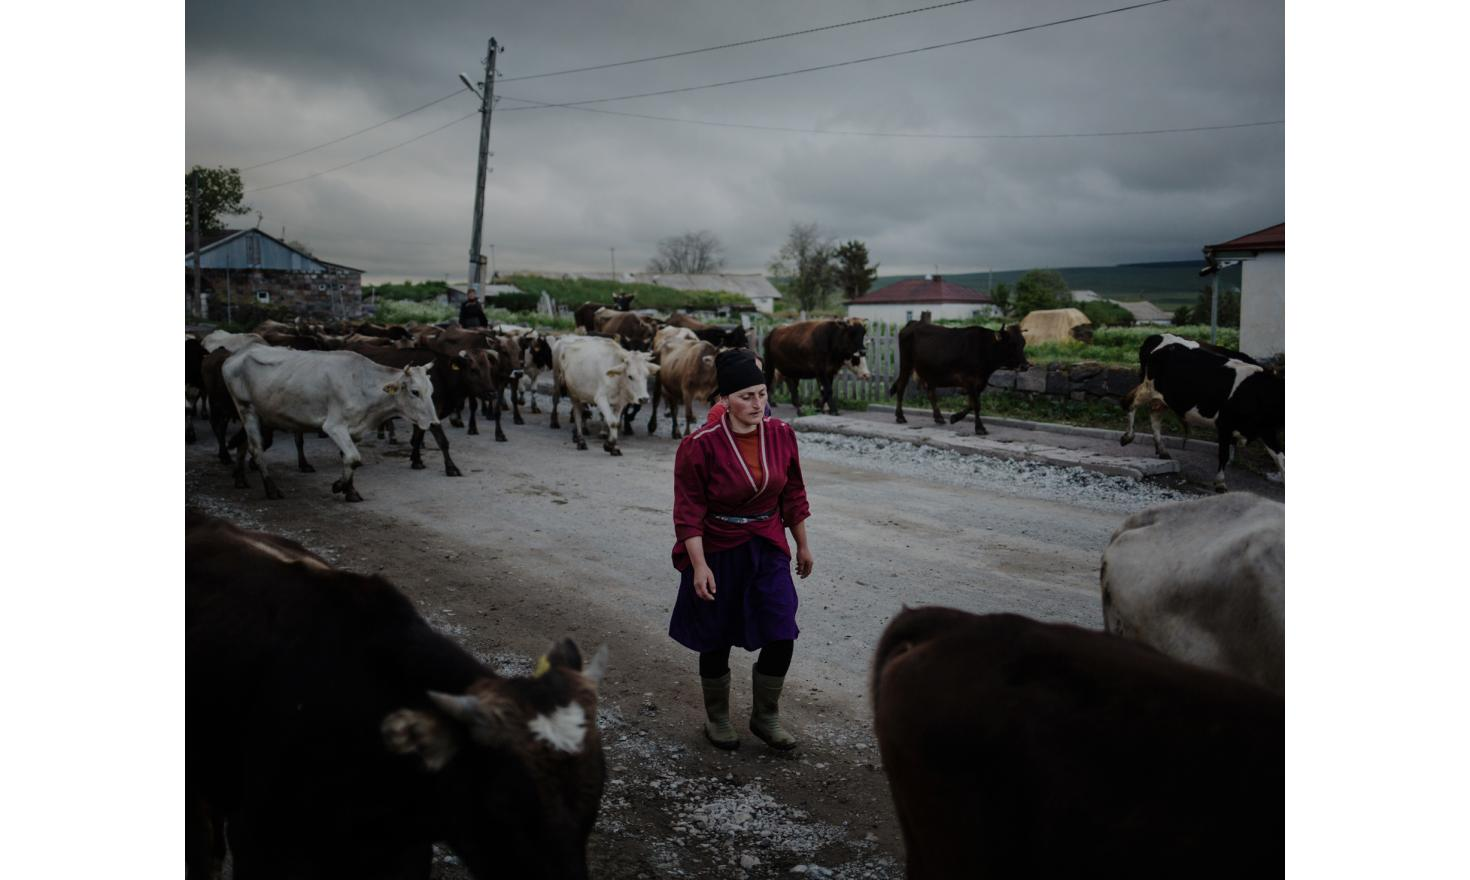 As cows are coming back from the fields, an Adjarian woman comes to pick her animals. Adjarians who arrived in the region are climatical refugees, they fled landslides in Adjara.